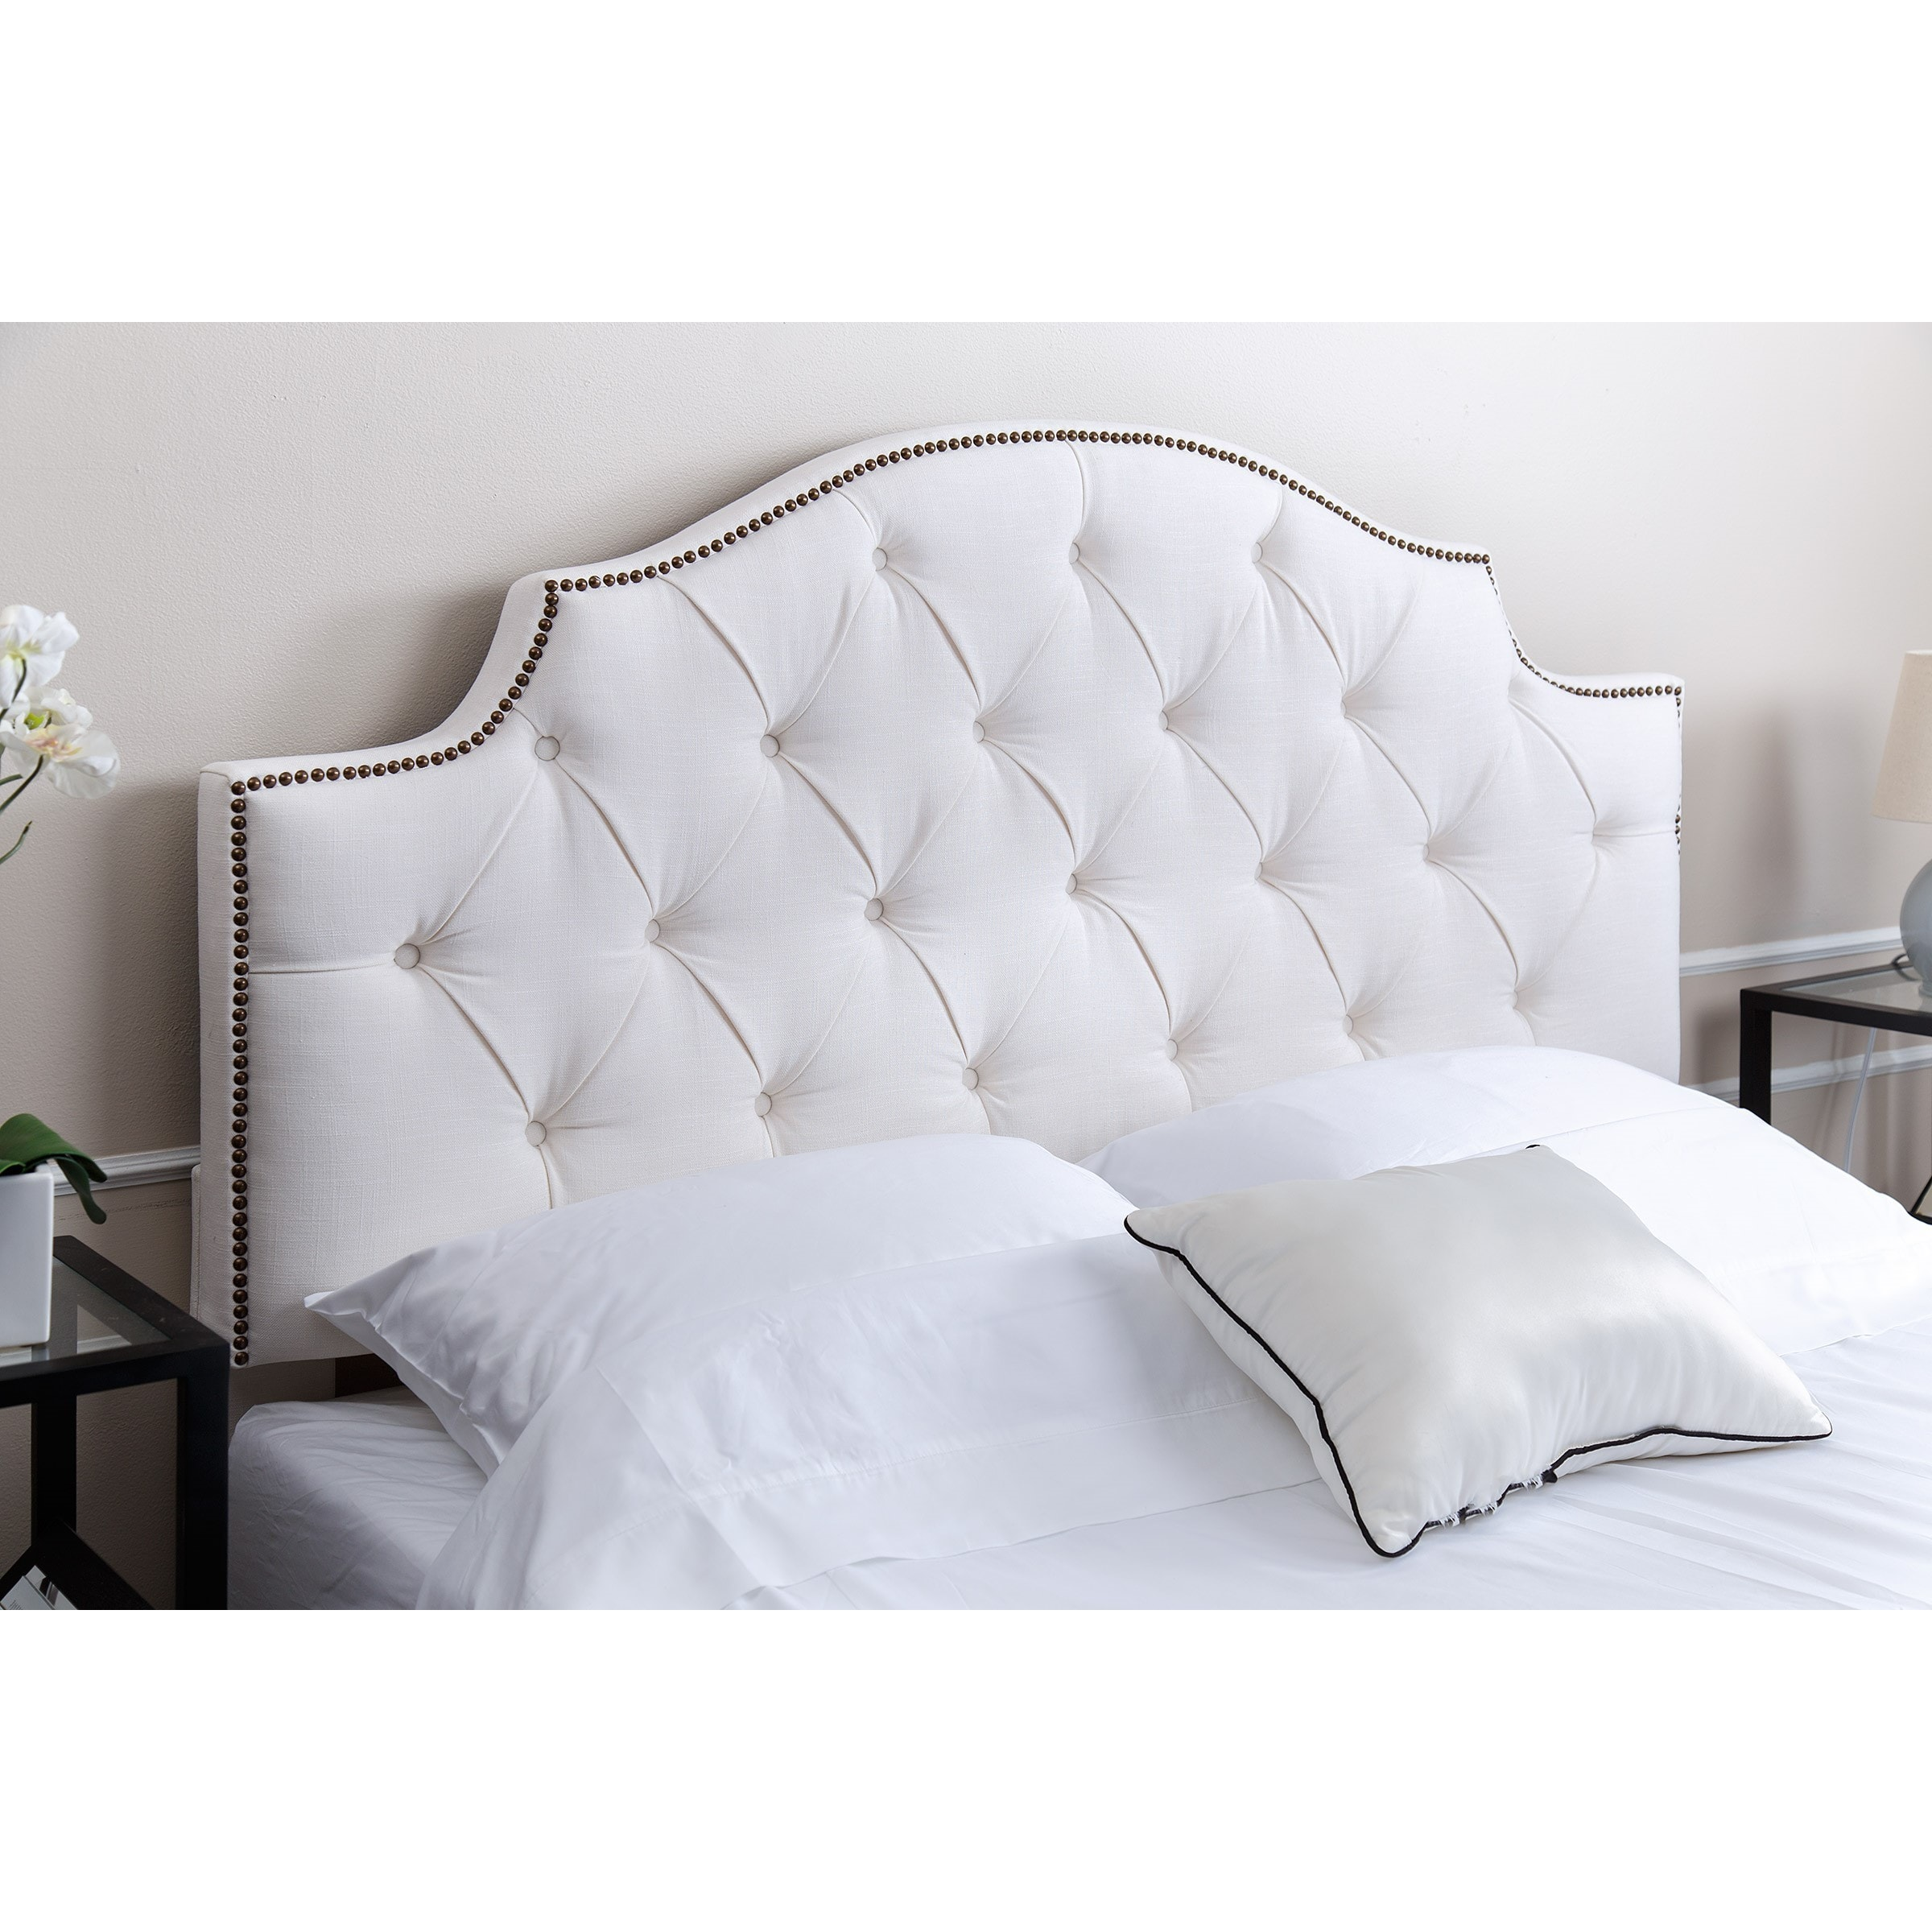 s headboard diy compassion info white headboards queen size fabric bed template